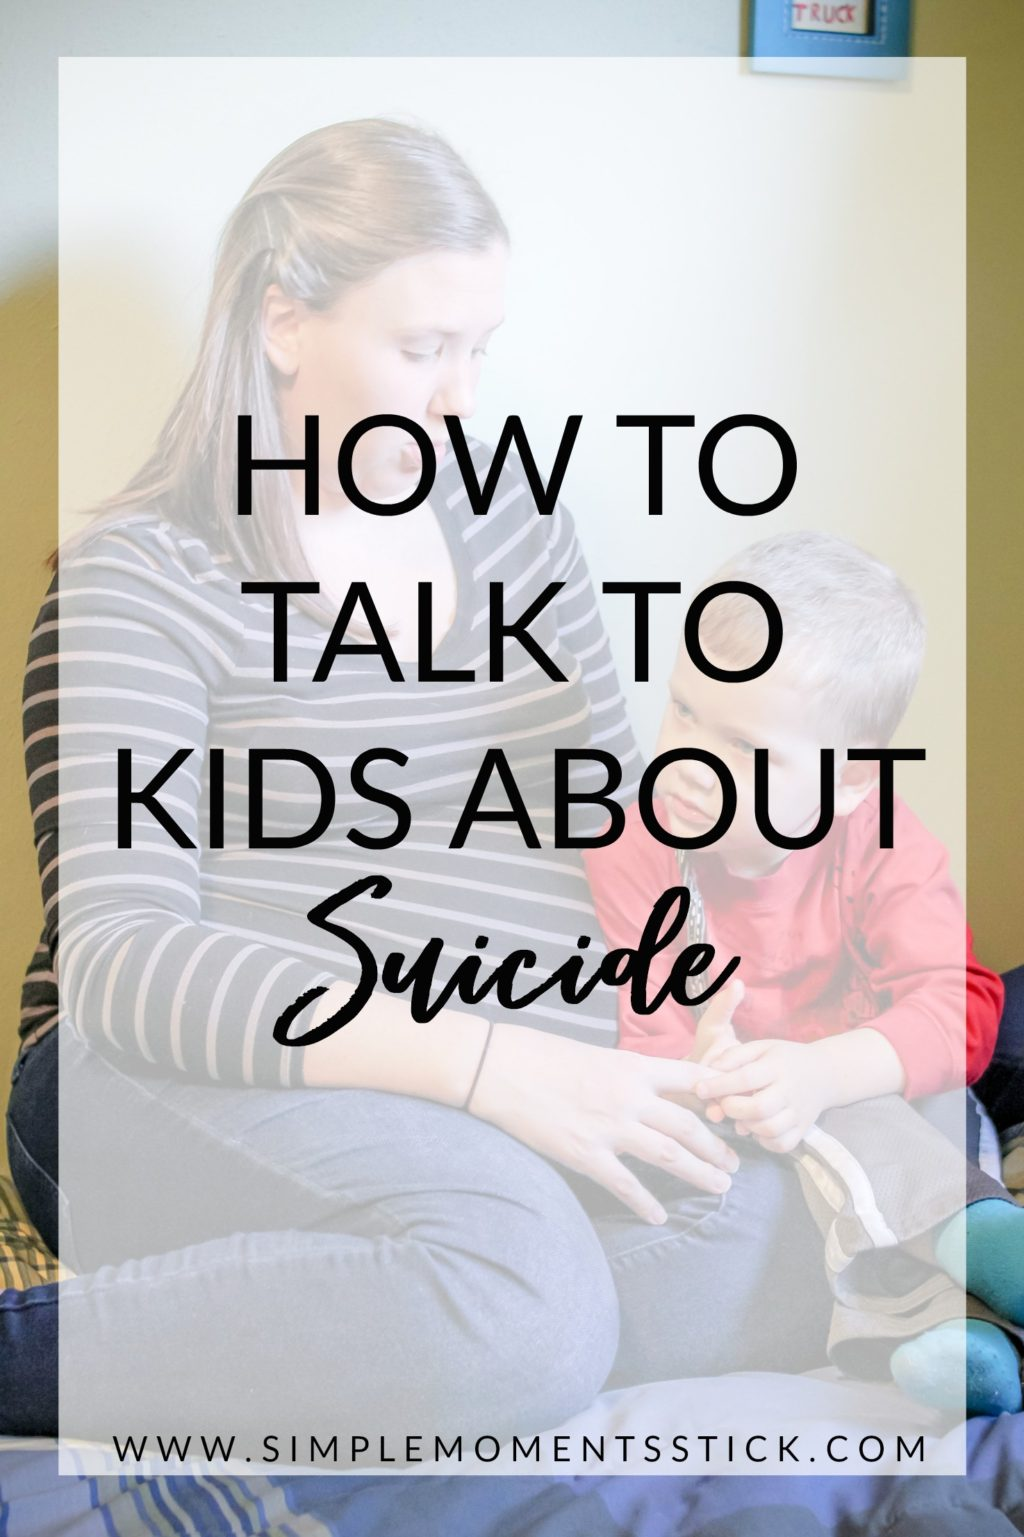 How to talk to kids about suicide from a Christian perspective.